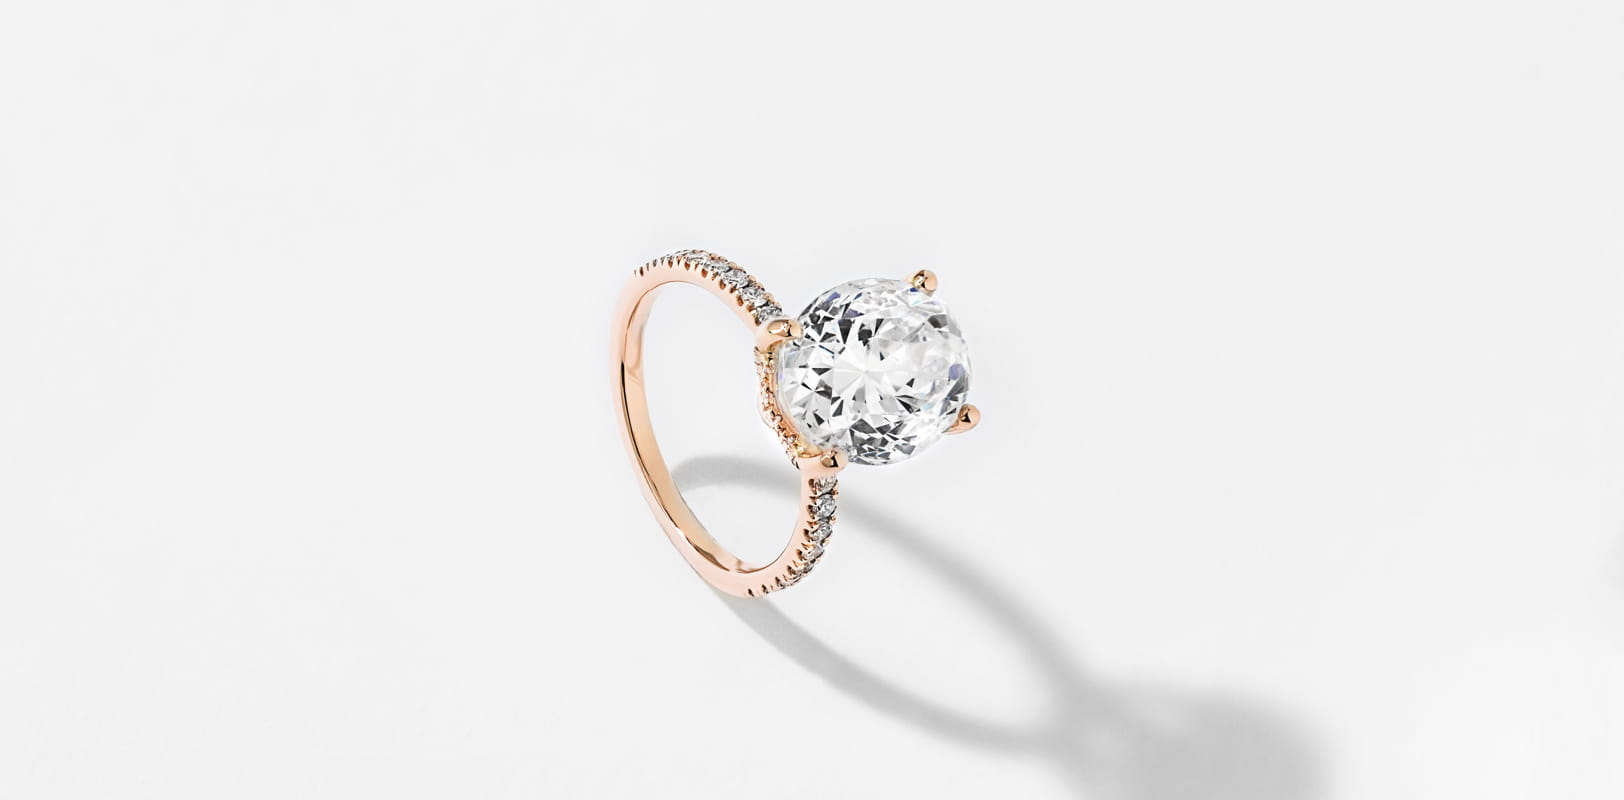 Affordable Engagement Rings & Diamonds